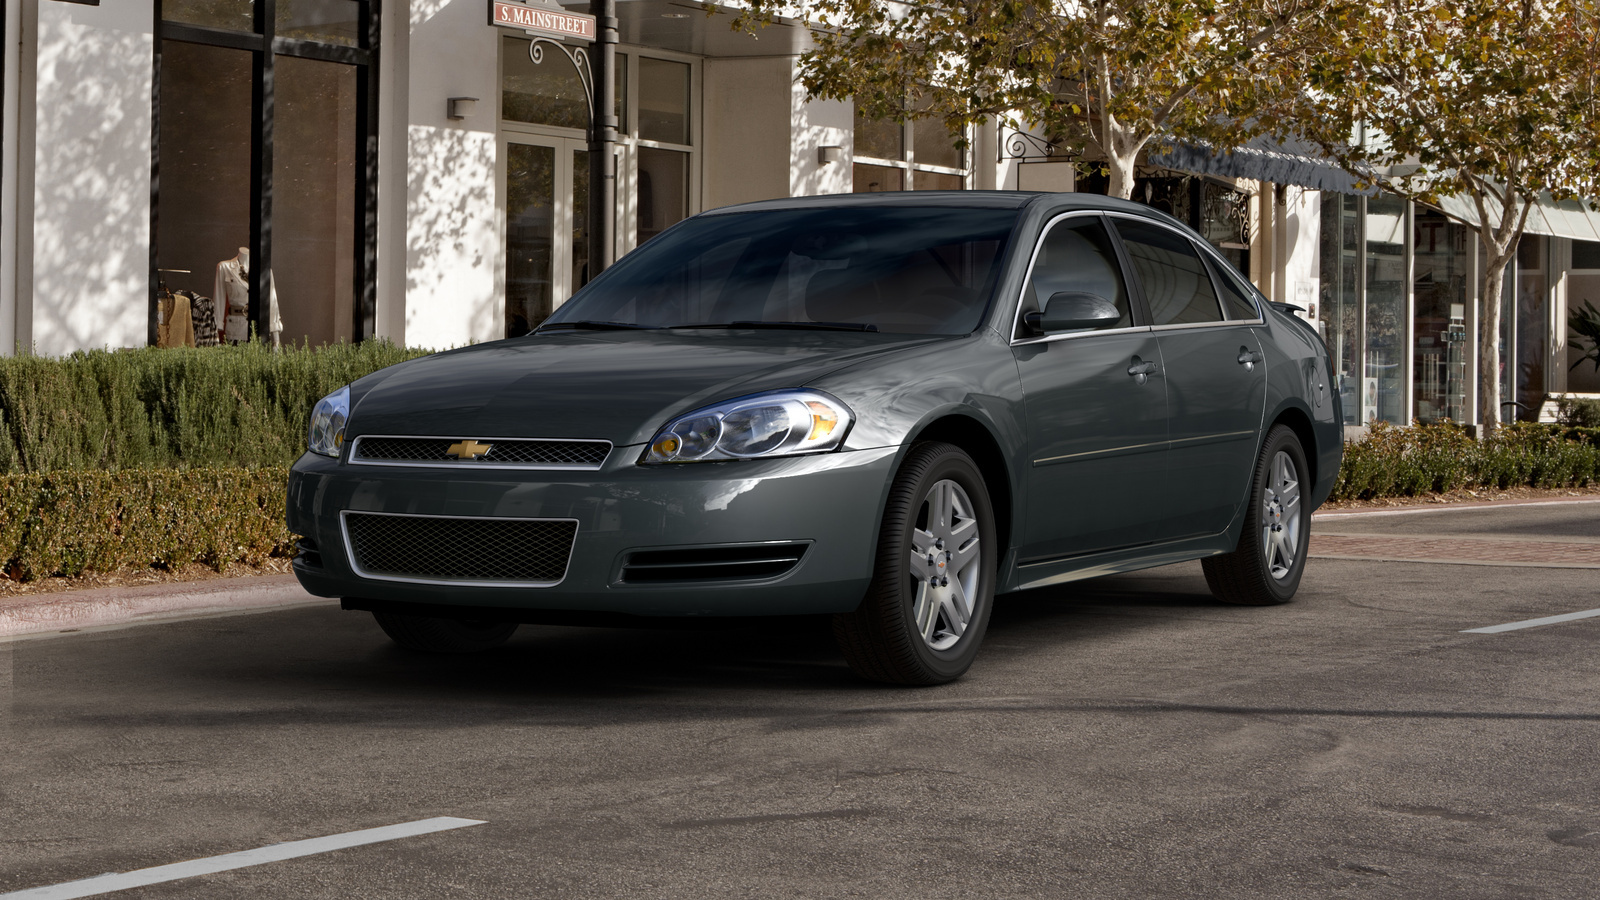 2013 Chevrolet Impala - Overview - CarGurus